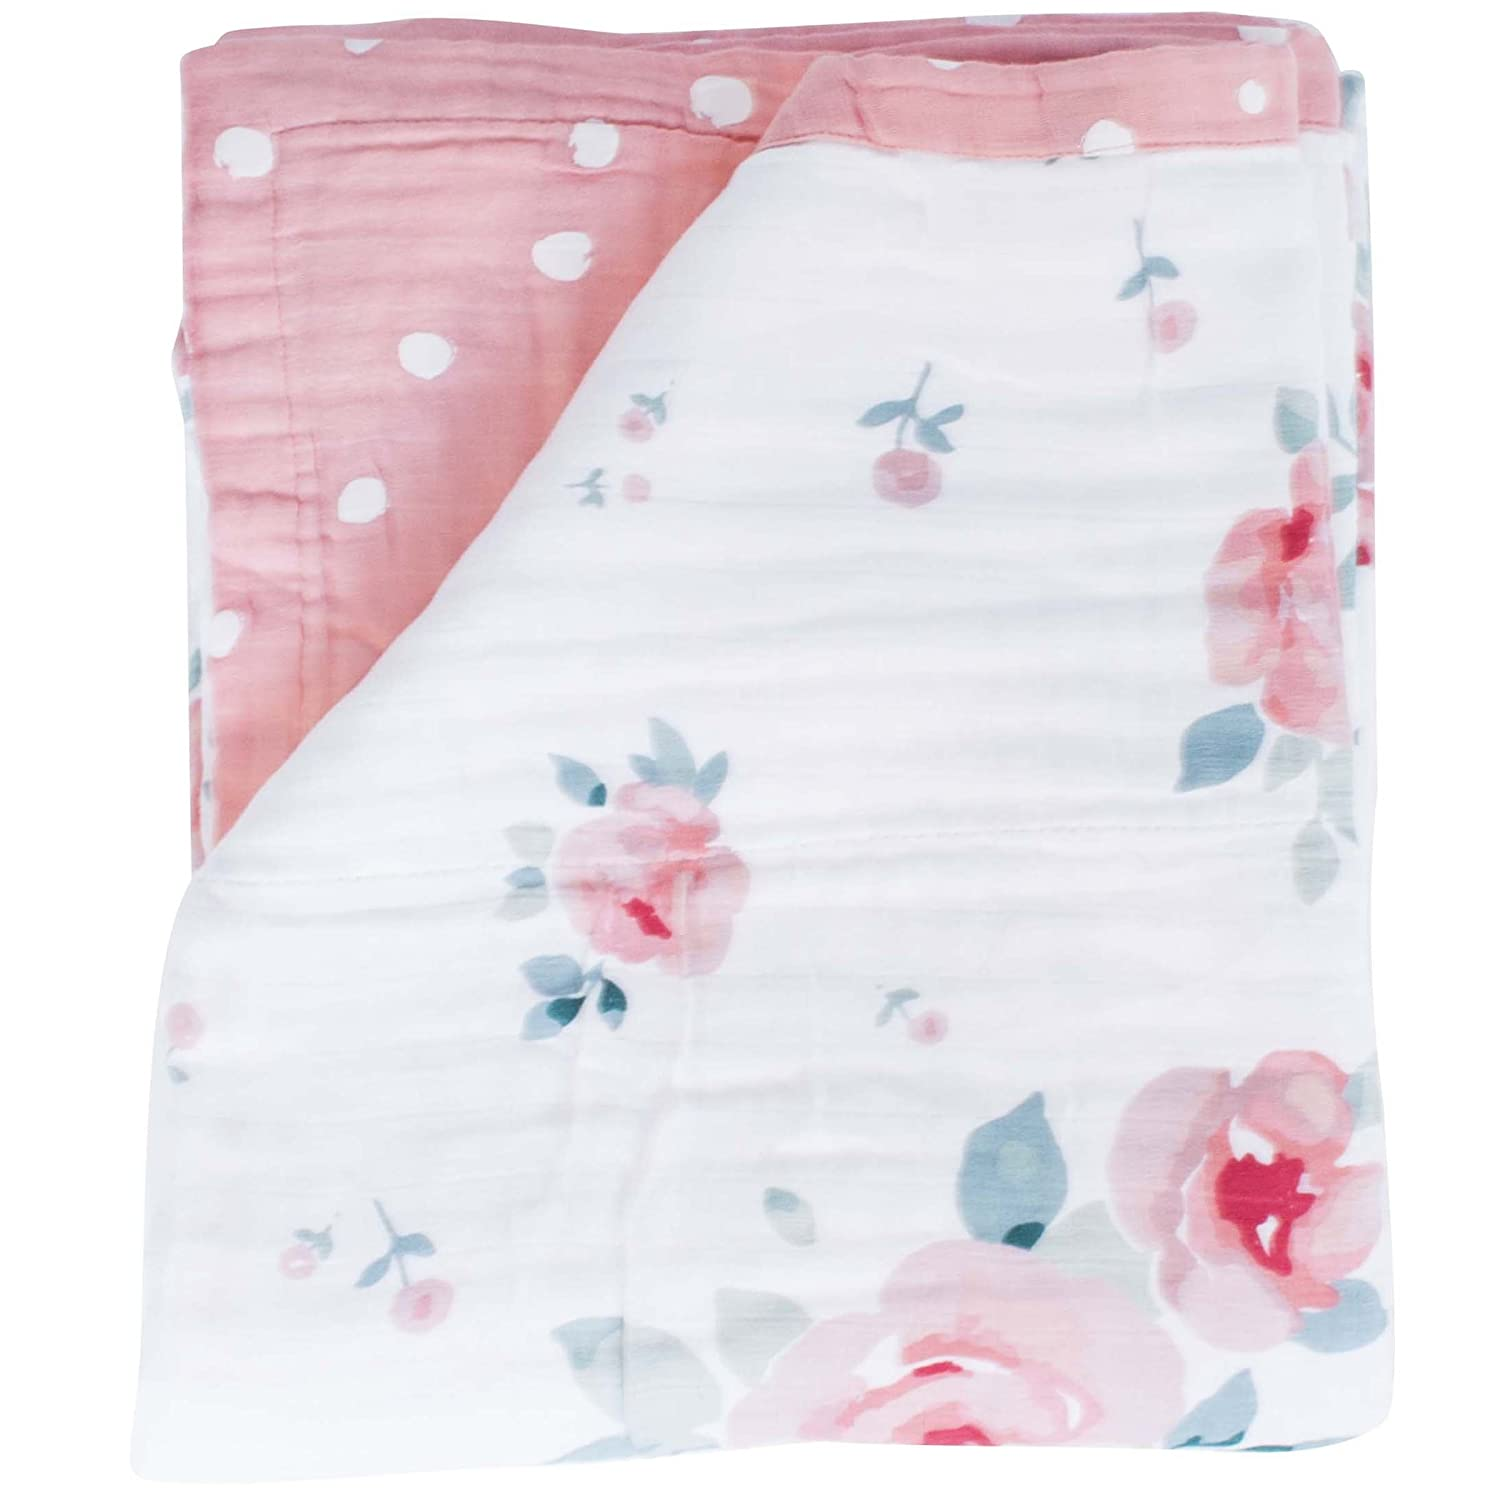 Great for swaddling made from 100/% cotton 3-Layer 23x23 made of soft muslin nursing cover Medium Snuggle Blankie travel blanket!